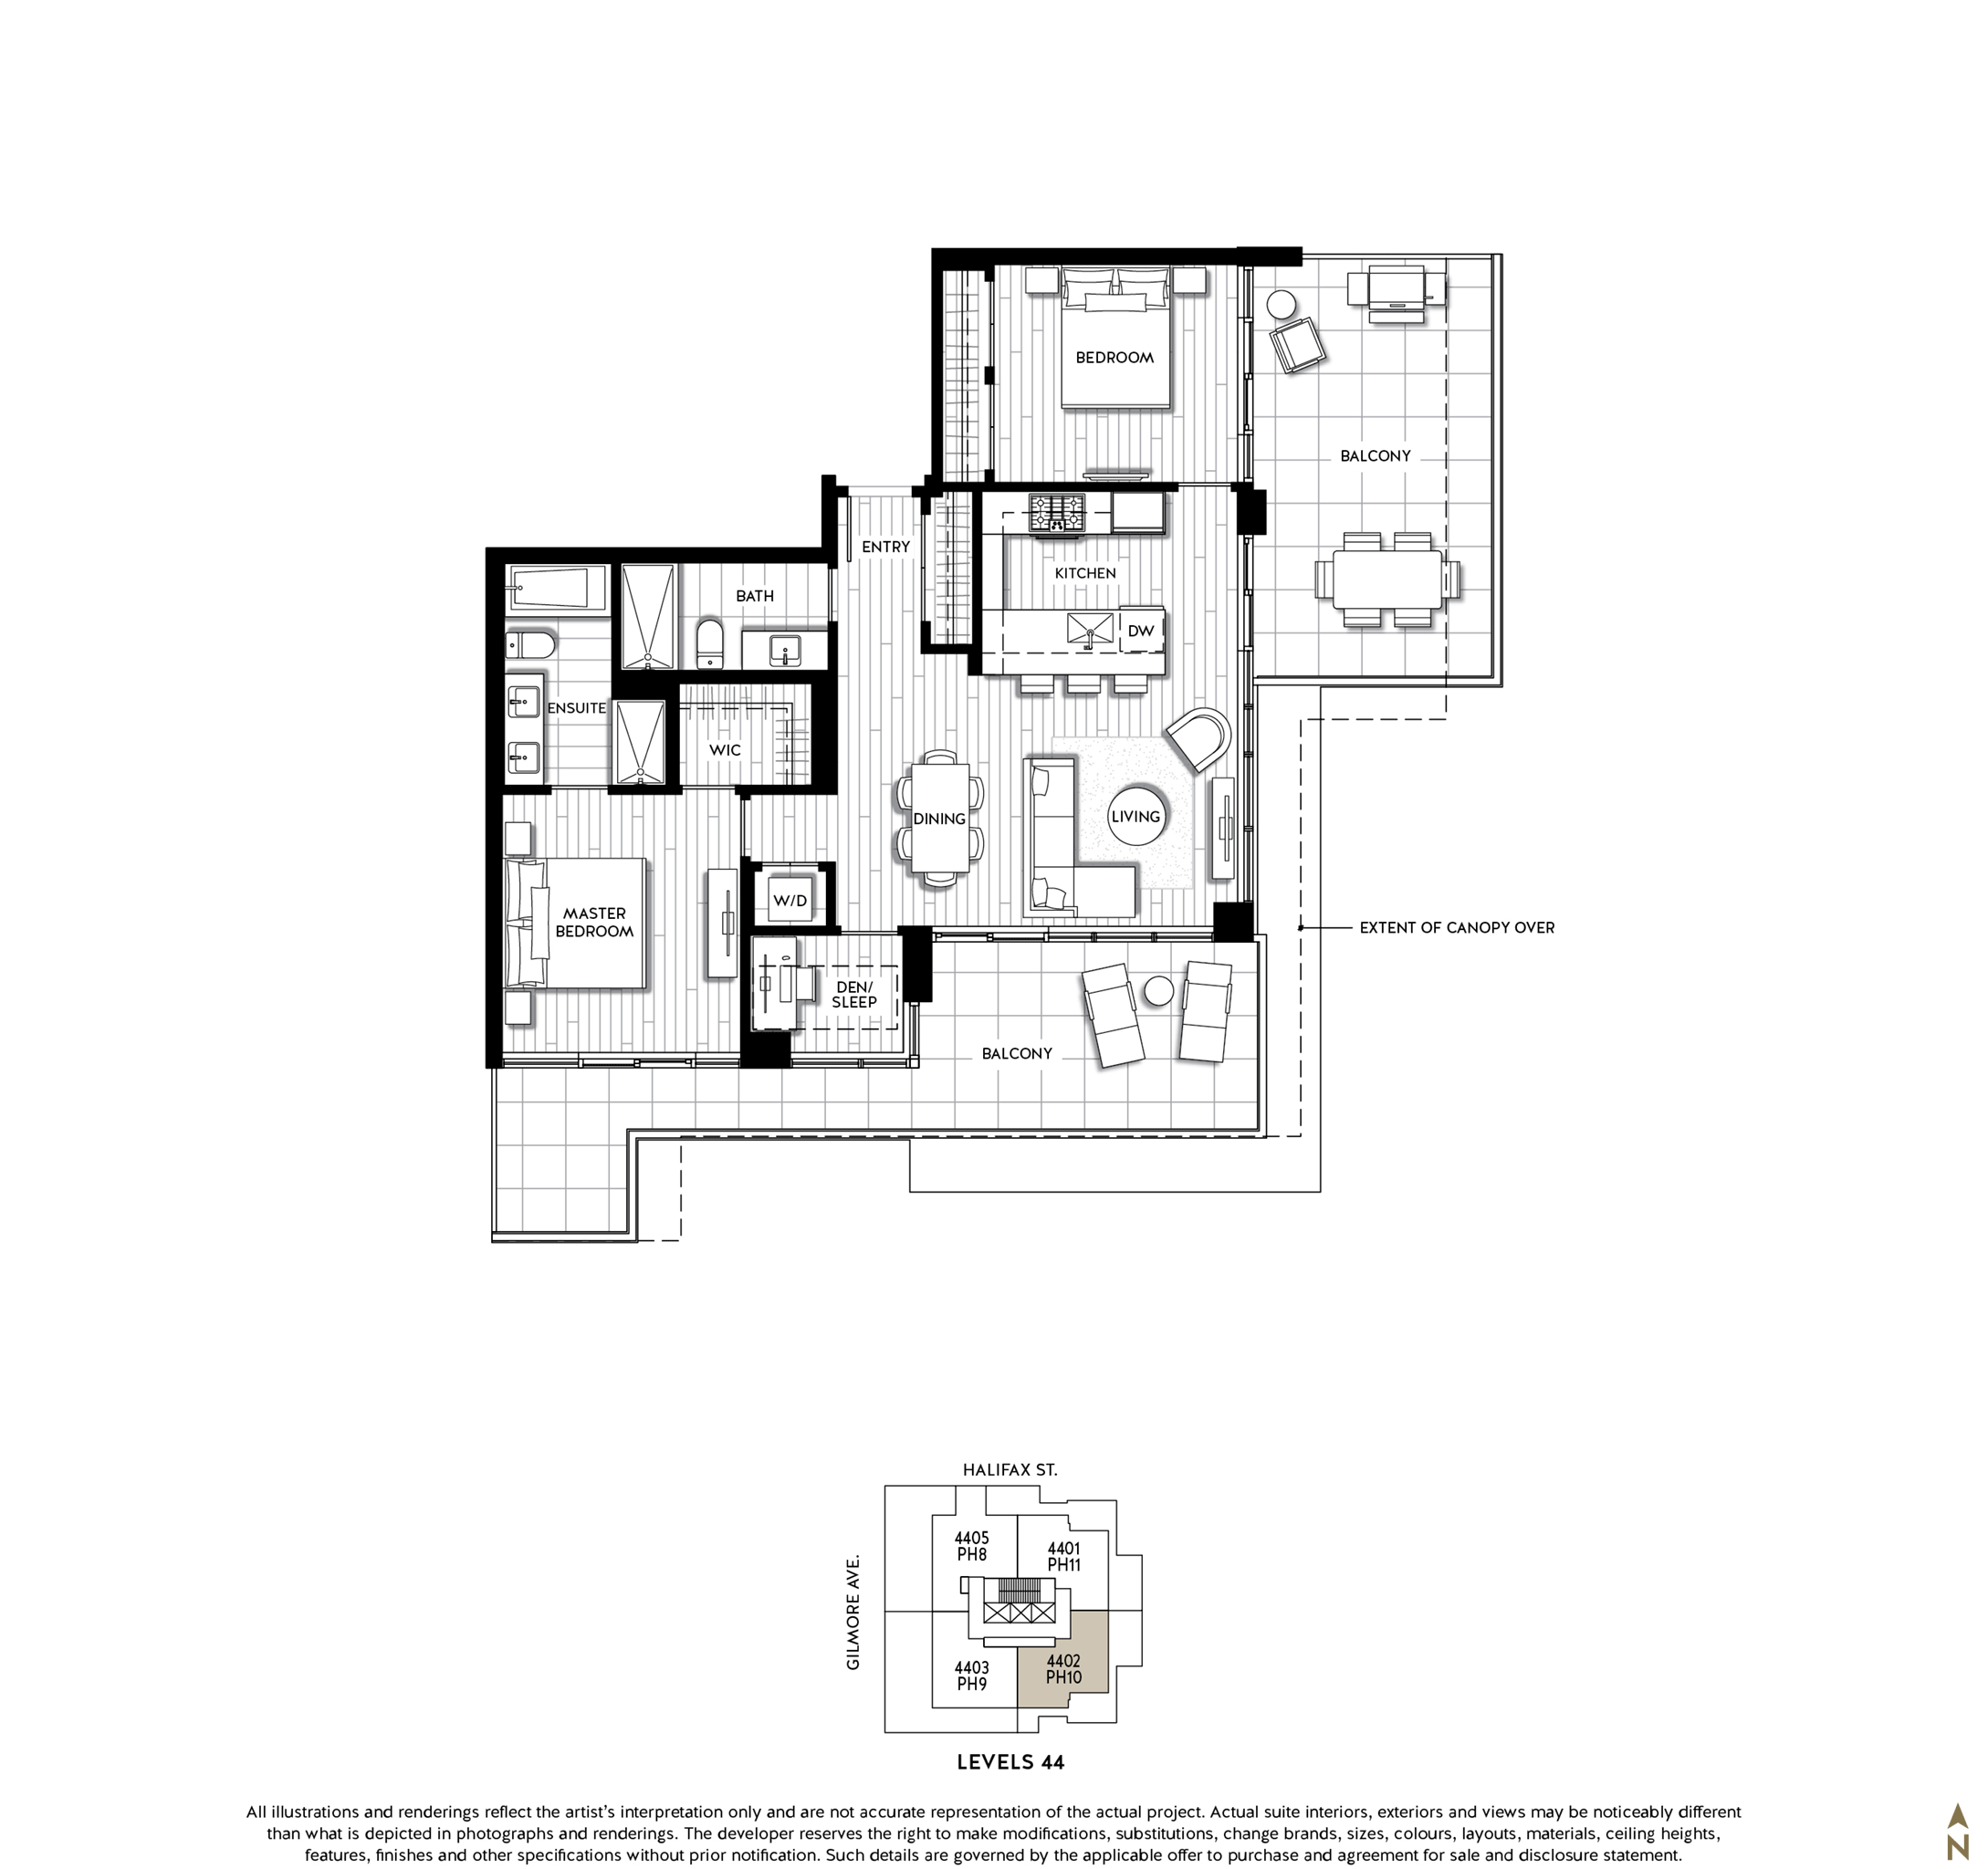 House with mezzanine floor plan simple cottage style for House plans with mezzanine floor